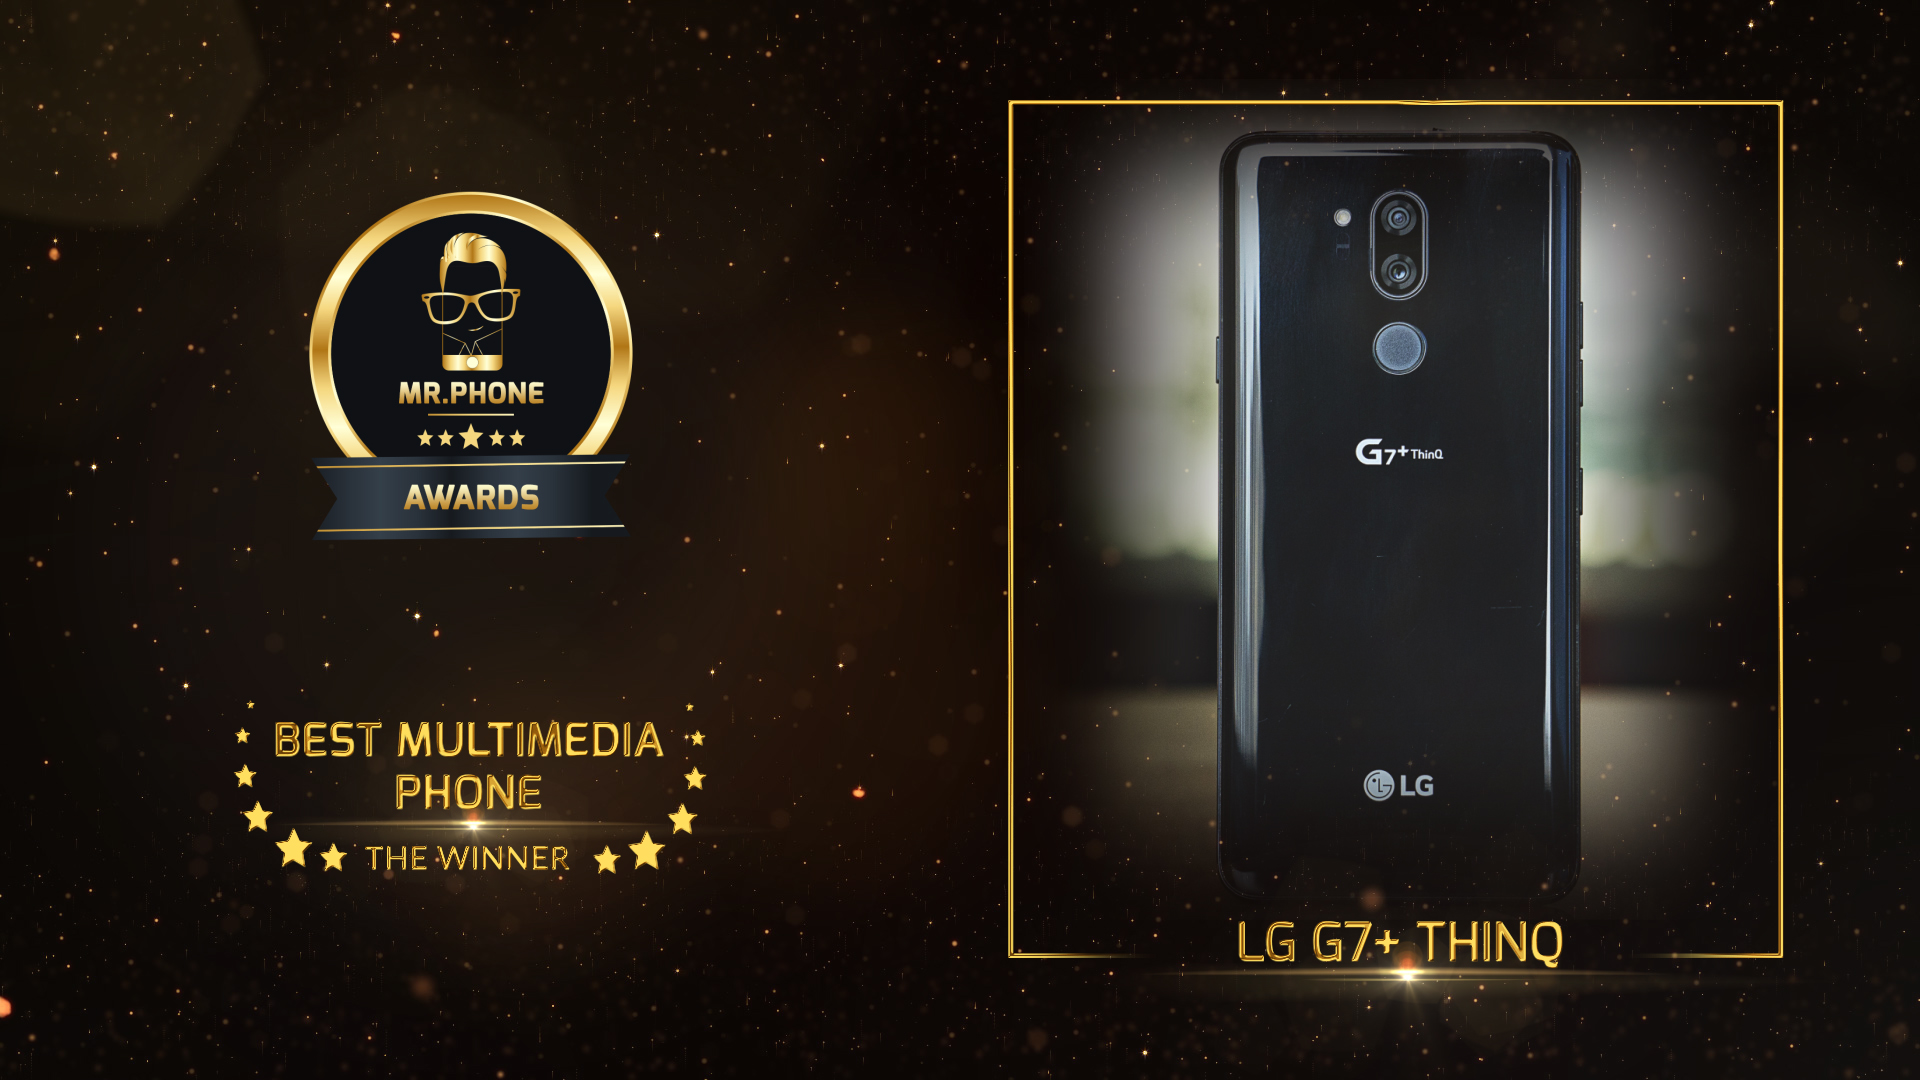 Mr. Phone Best Multimedia Phone 2018 - LG G7+ ThinQ